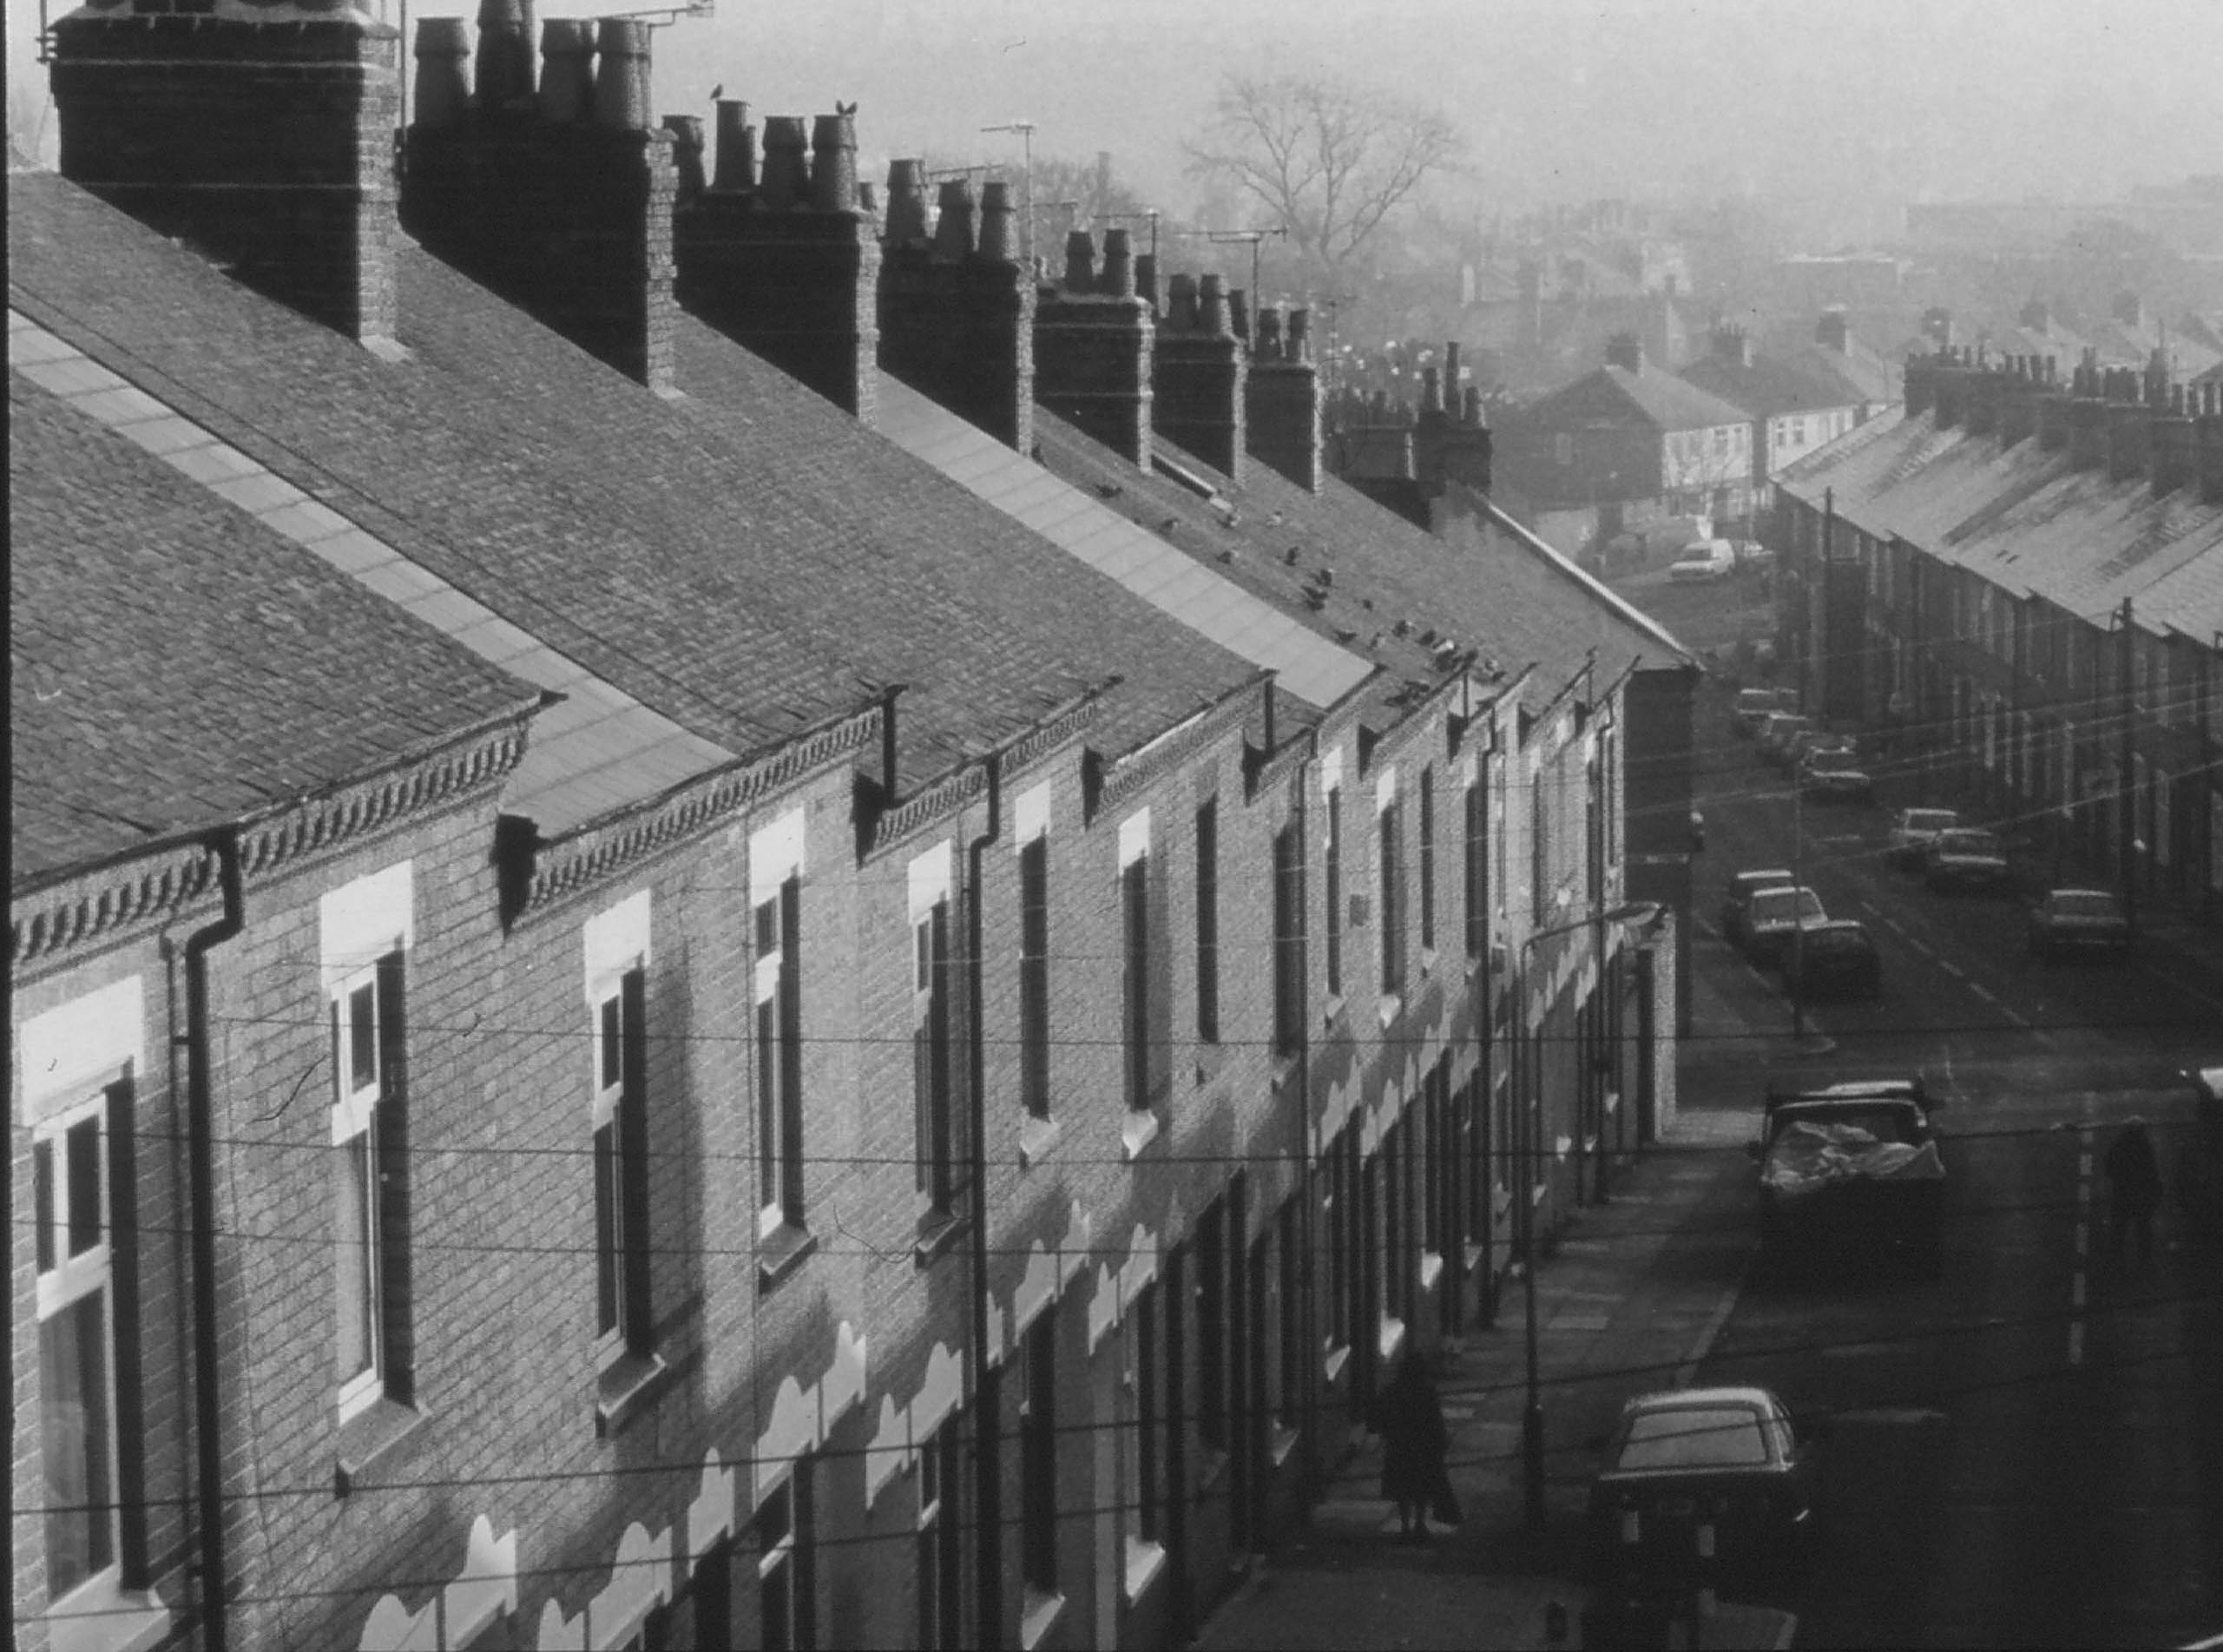 2001 - Housing, Clarendon Park black and white